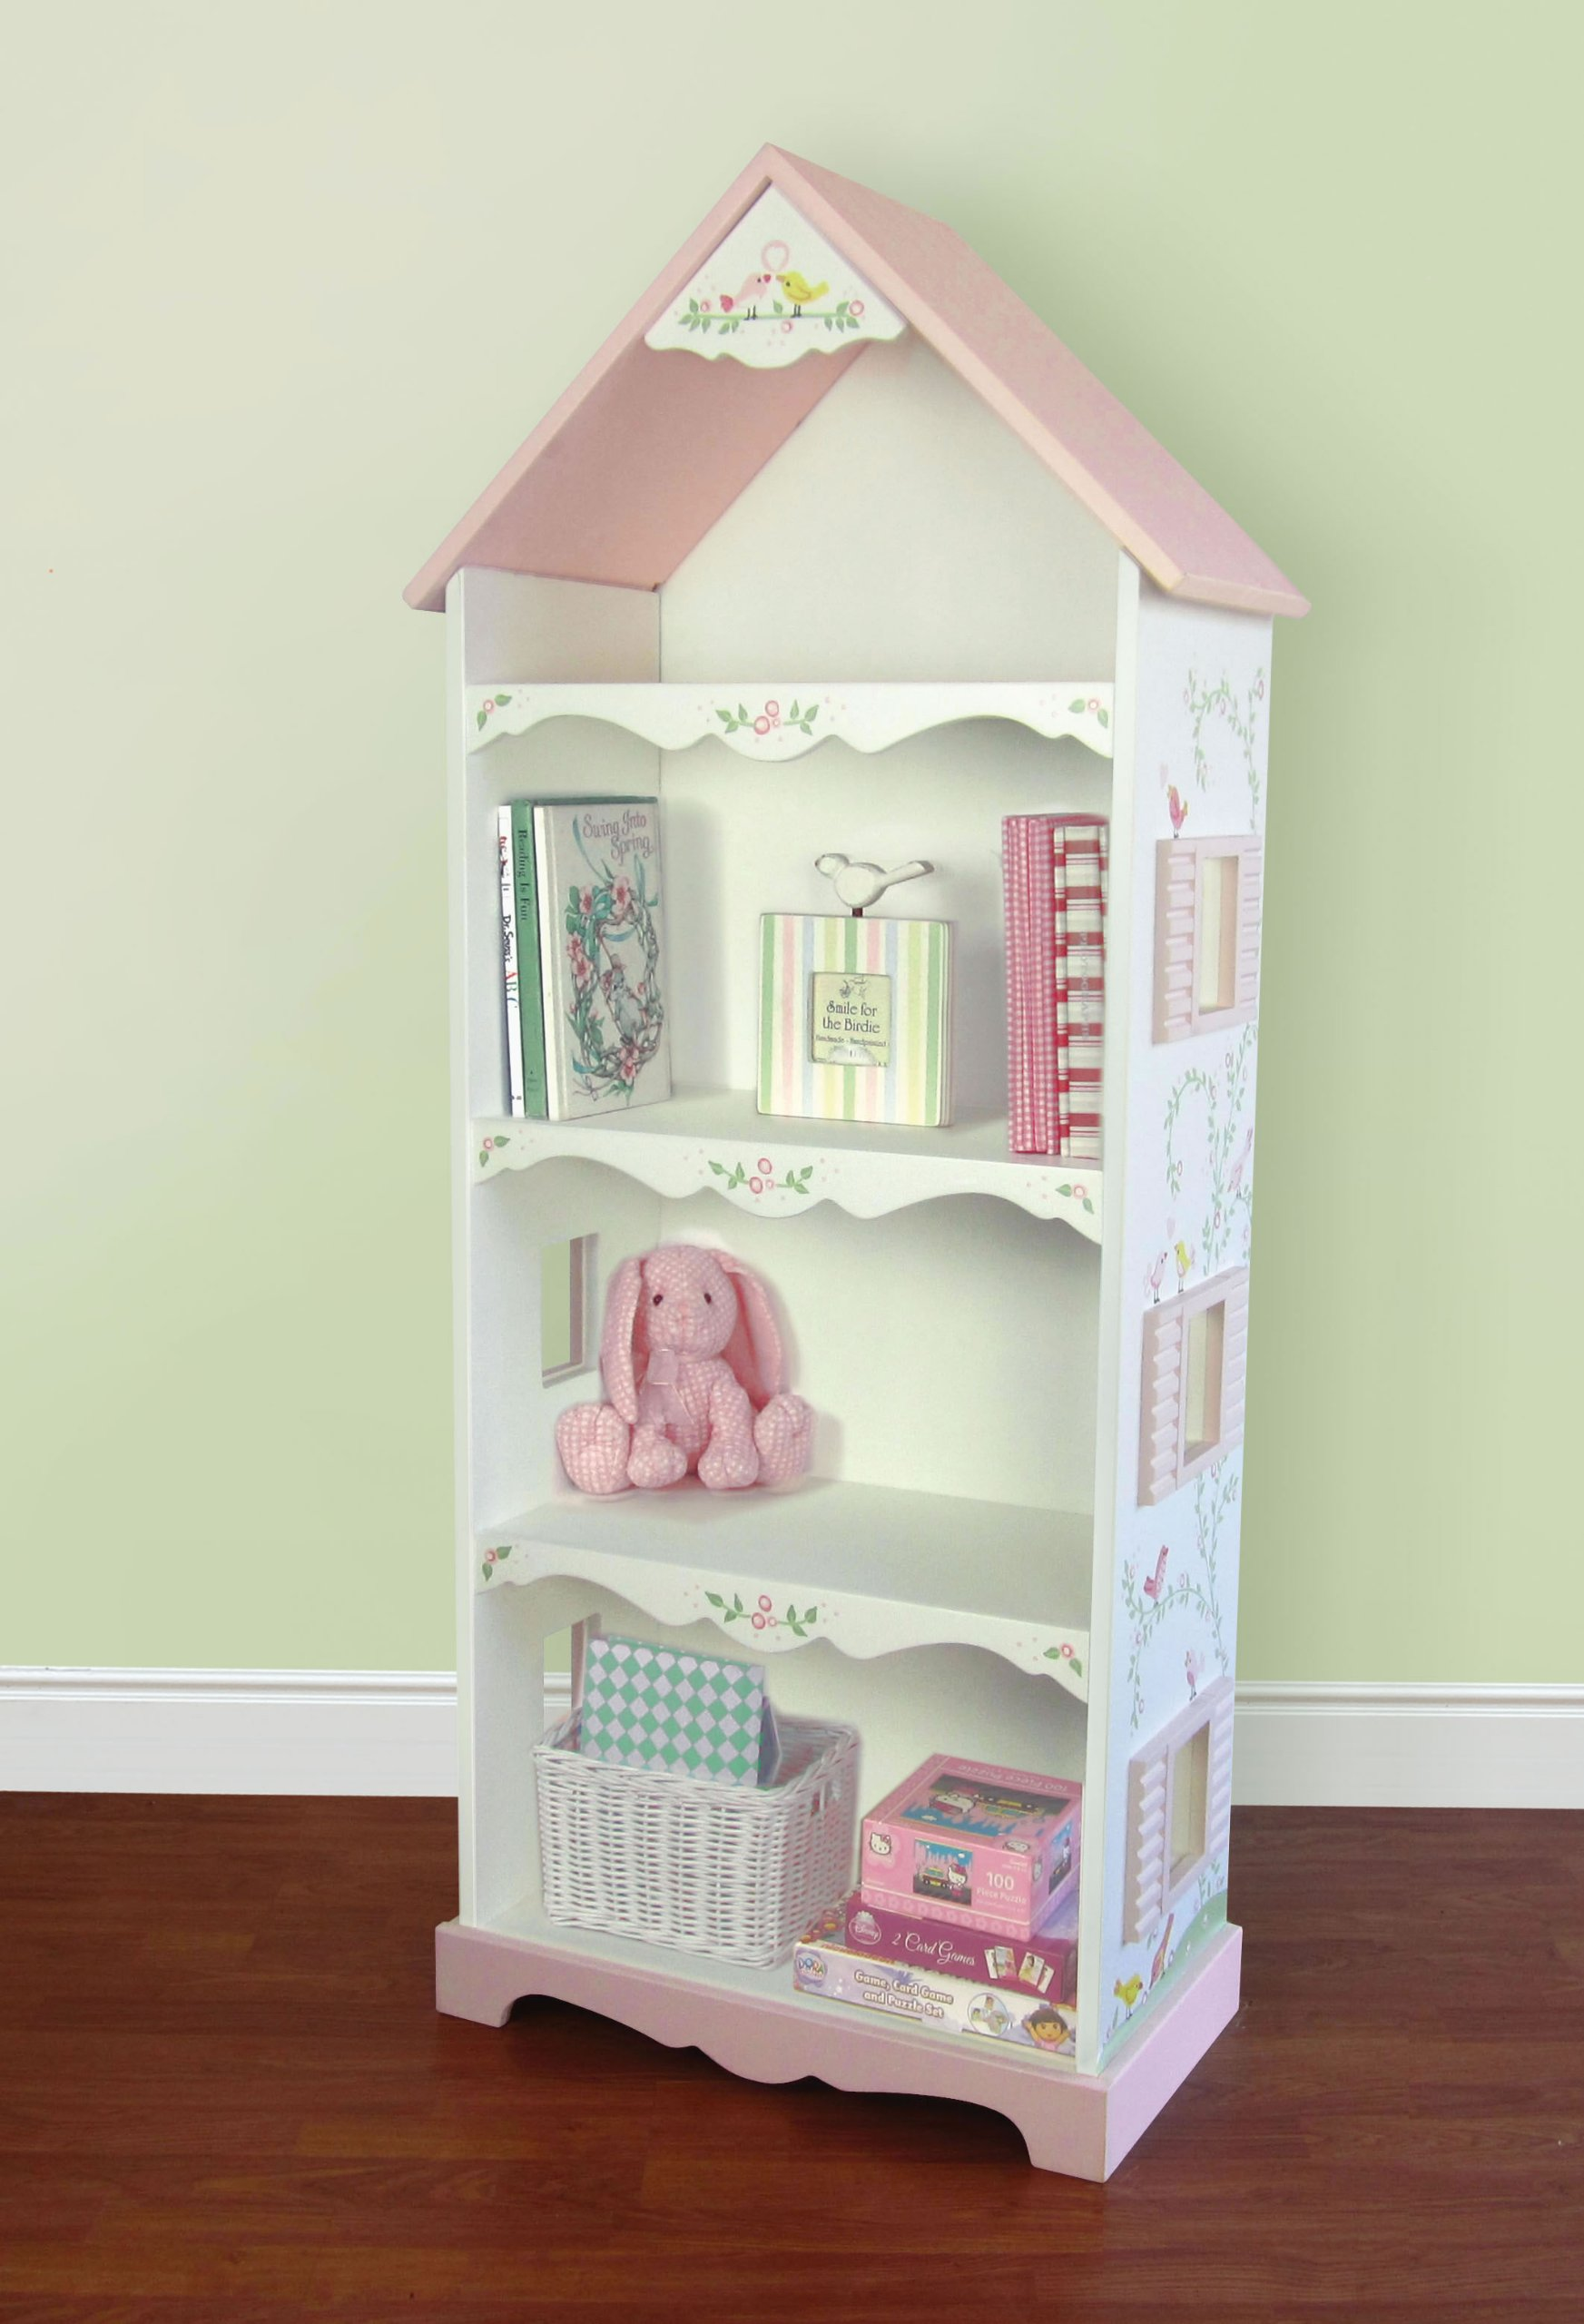 Hand Painted Love Birds Dollhouse Bookshelf